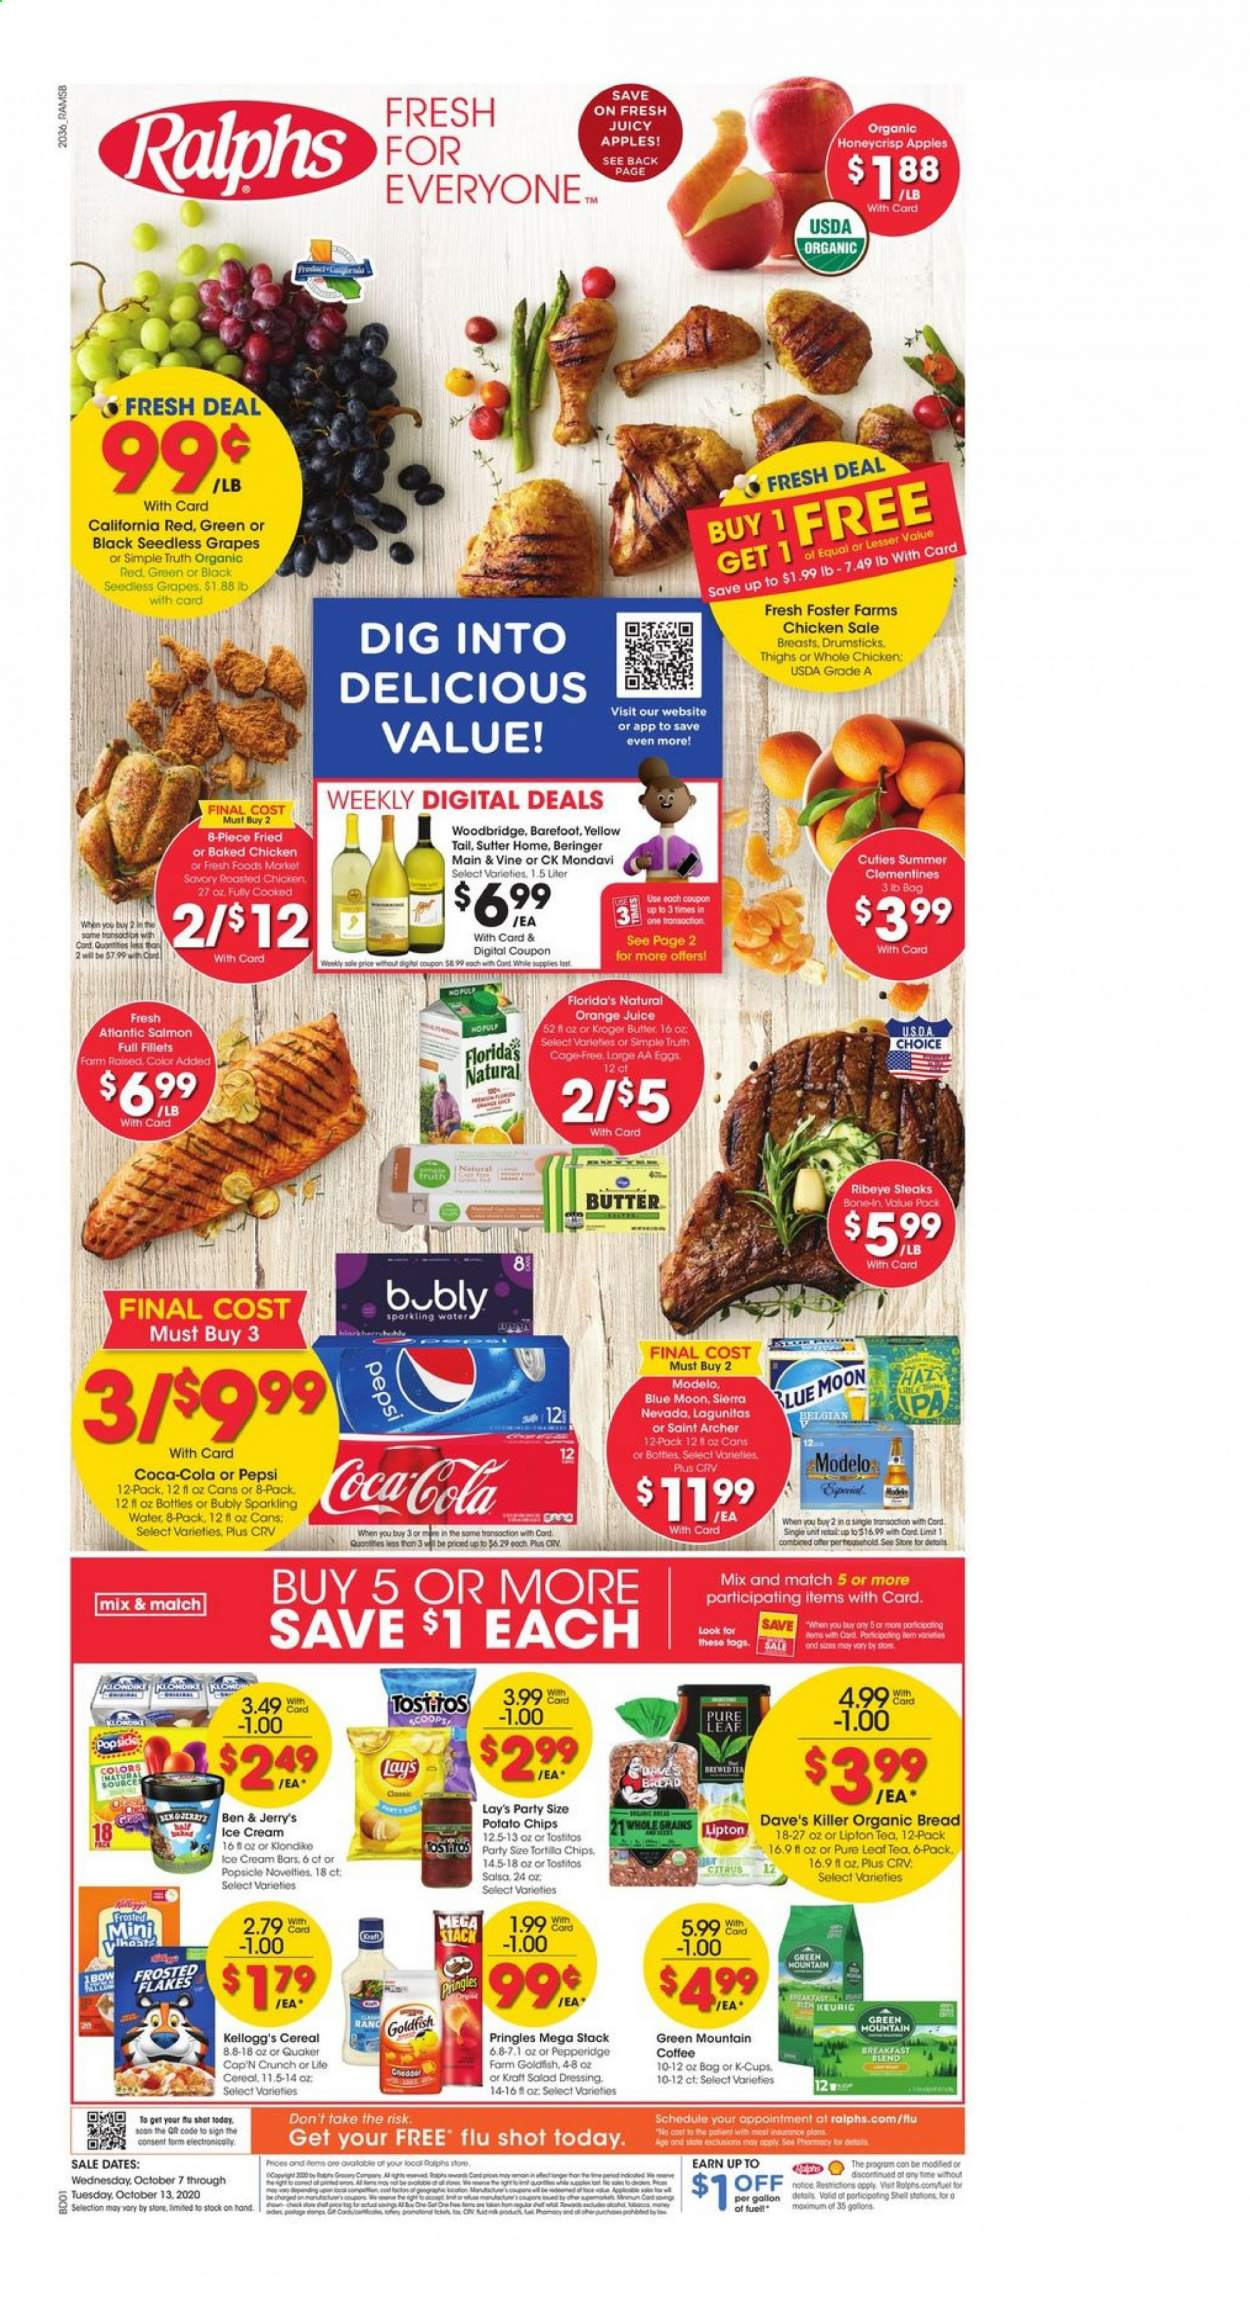 Ralphs Flyer - 10.07.2020 - 10.13.2020 - Sales products - apples, archer, bread, butter, cap, cereals, clementines, coca-cola, cod, coffee, dates, eggs, fuel, grapes, salad dressing, salmon, seedless grapes, shell, tea, tortilla chips, whole chicken, ice cream, ice cream bars, potato chips, pringles, chicken, pepsi, orange juice, orange, organic, chips, juice, dressing, sparkling water, salsa, cereal, bow, lay's, lipton, salad, flakes, cot, blue moon, apple. Page 1.